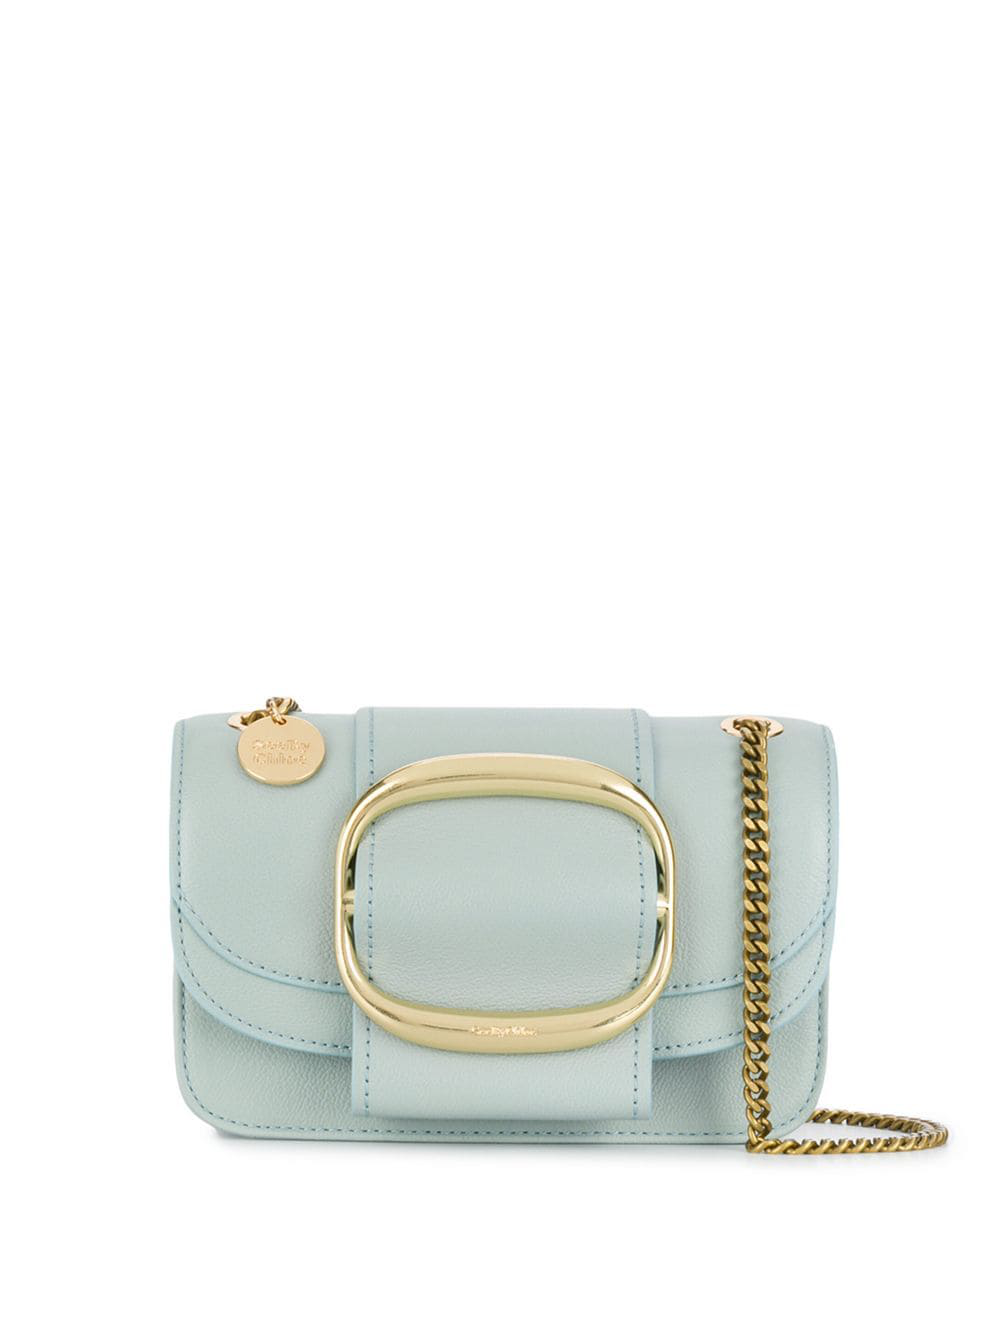 0fce6cf2bab8 See By ChloÉ Hopper Small Cross Body Bag - Blue